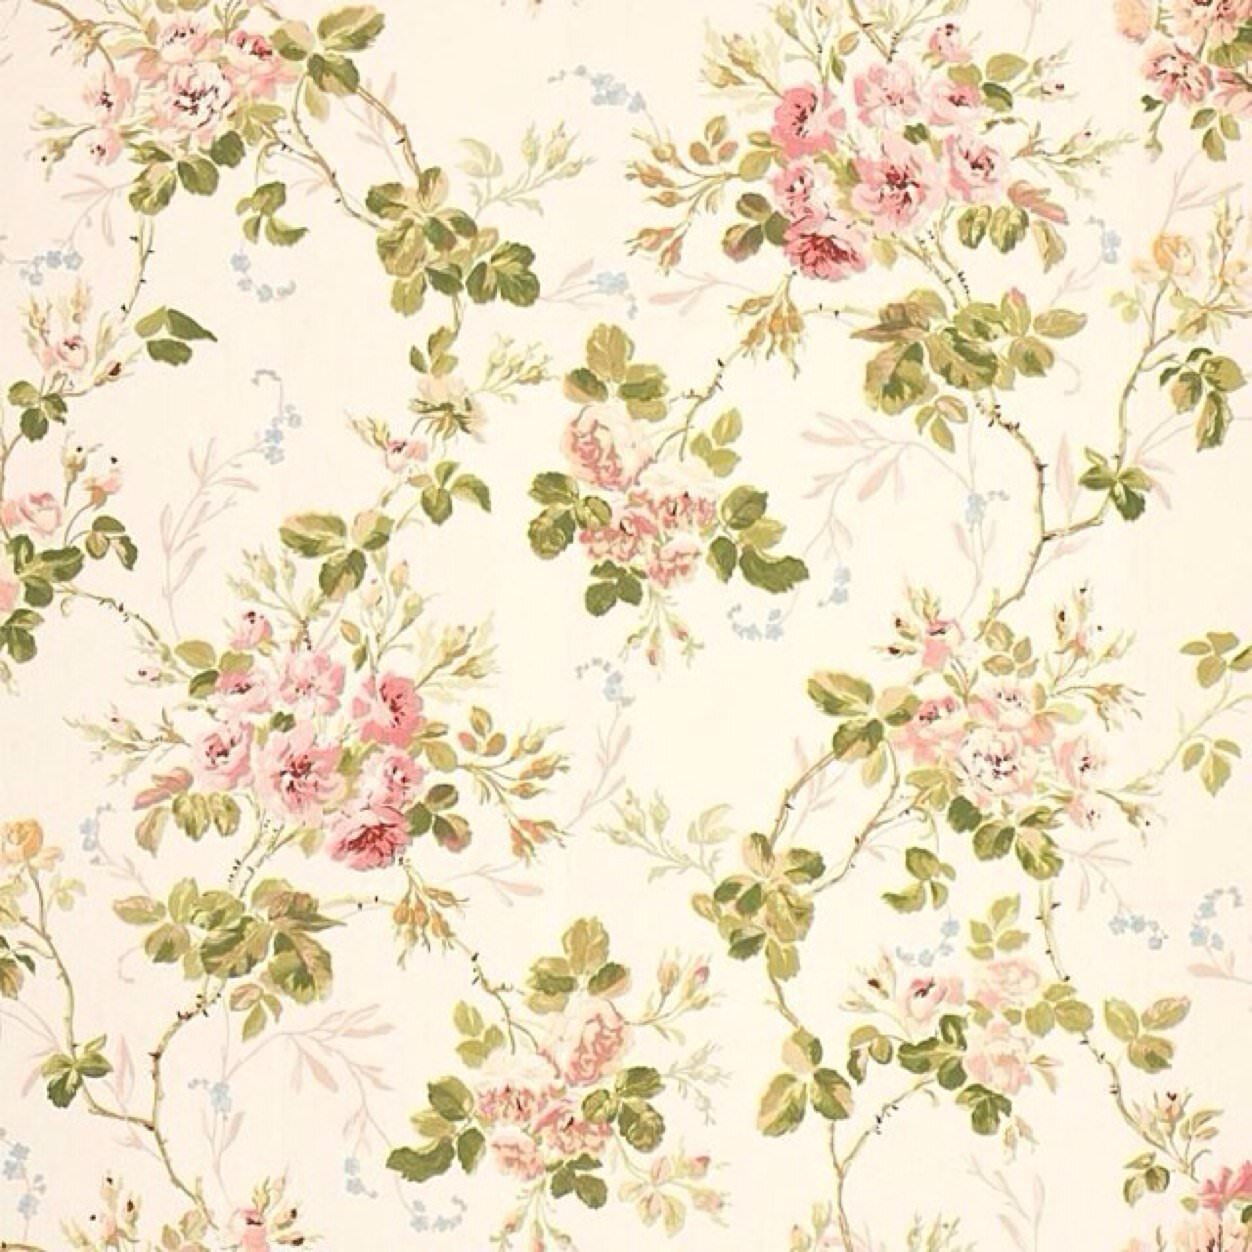 Free Download Download 15 Floral Vintage Wallpapers 1252x1252